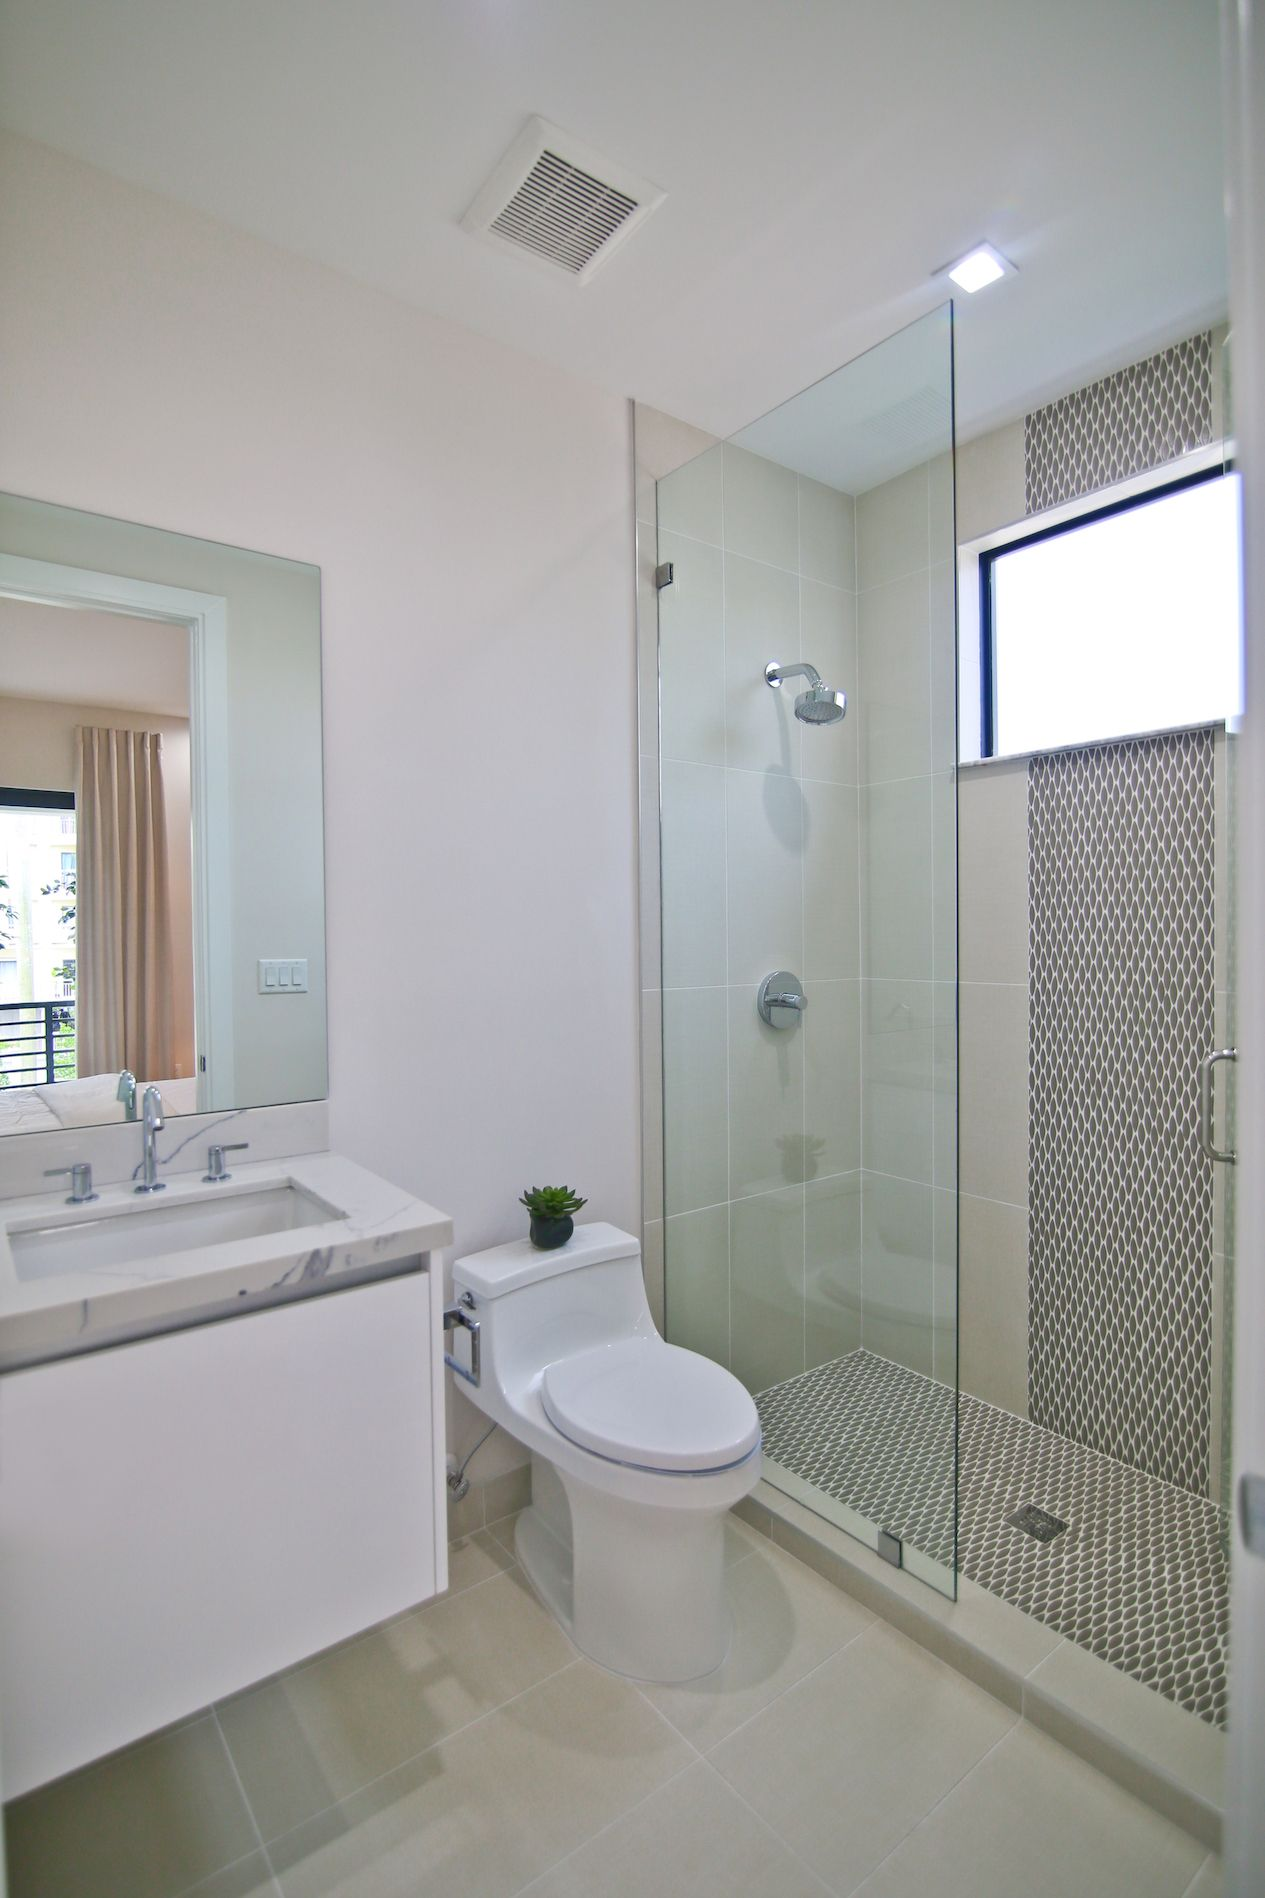 Bathroom featured in the Model A - Two-Story By CC Homes in Miami-Dade County, FL